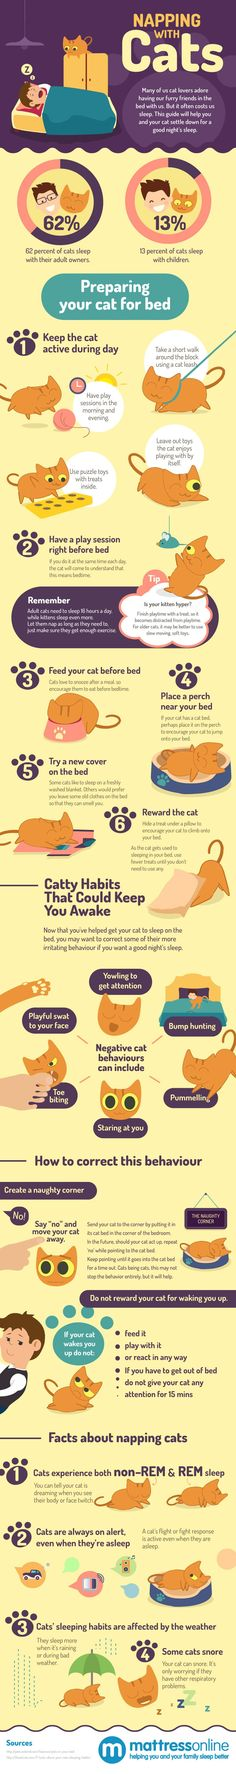 Cat Owners - How To Nap With Your Cats - Infographic